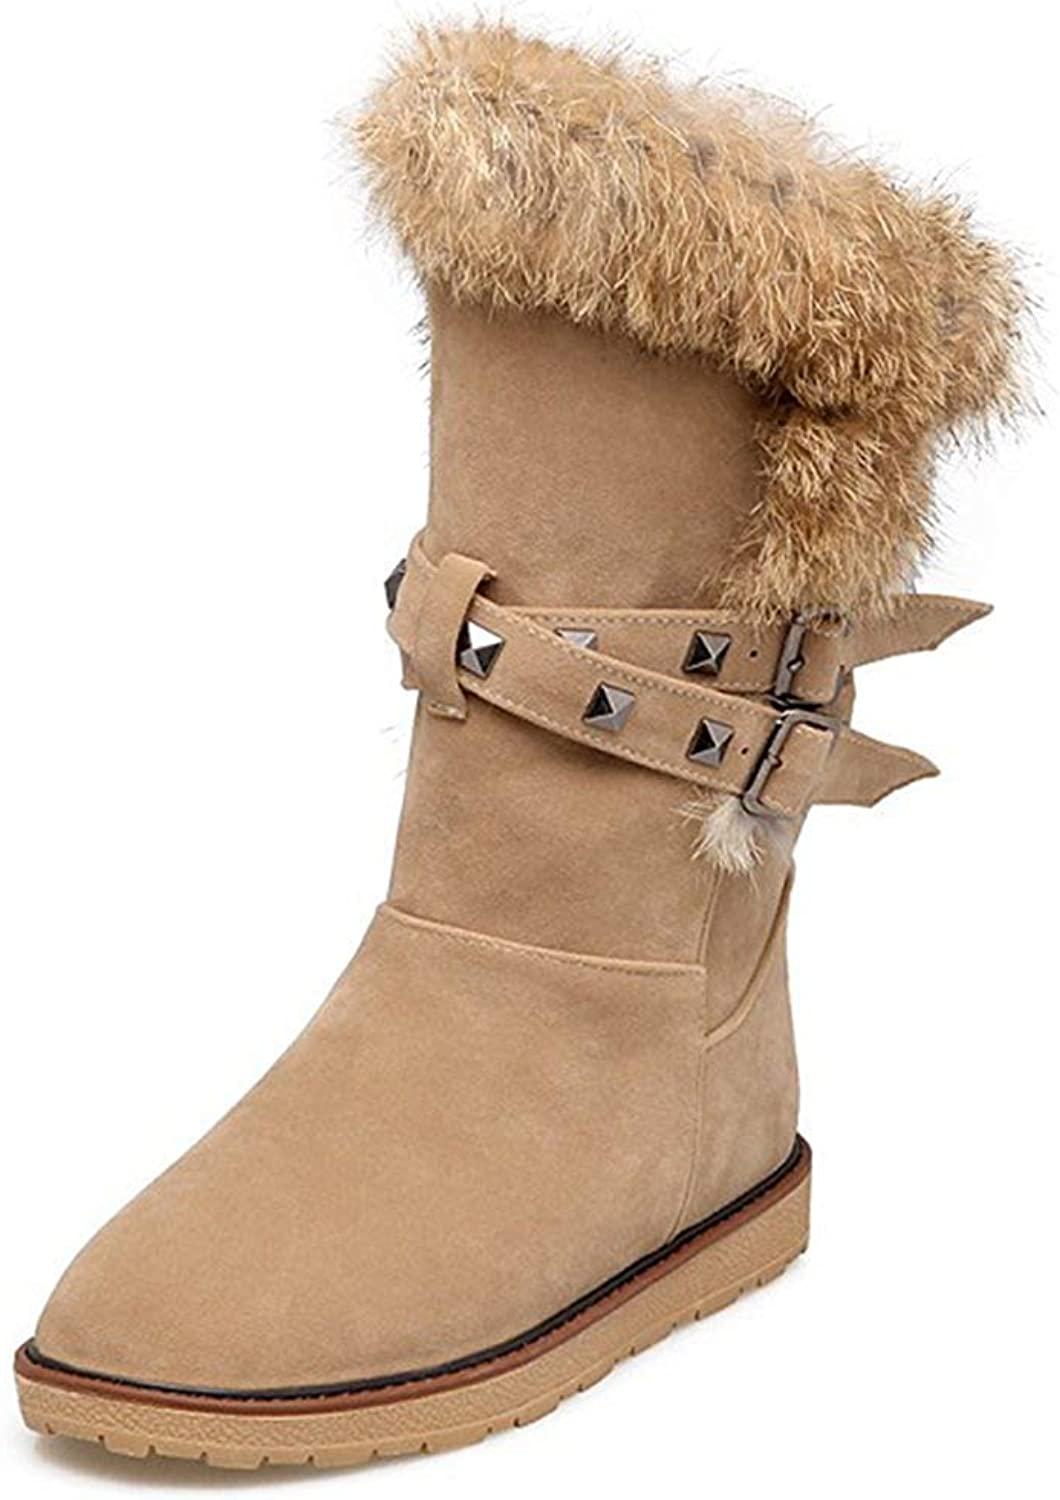 Lelehwhge Women's Warm Faux Suede Fur Rivets Studded Straps Buckle Round Toe Round Toe Flats Slip in Mid Calf Snow Boots Apricot 10 M US